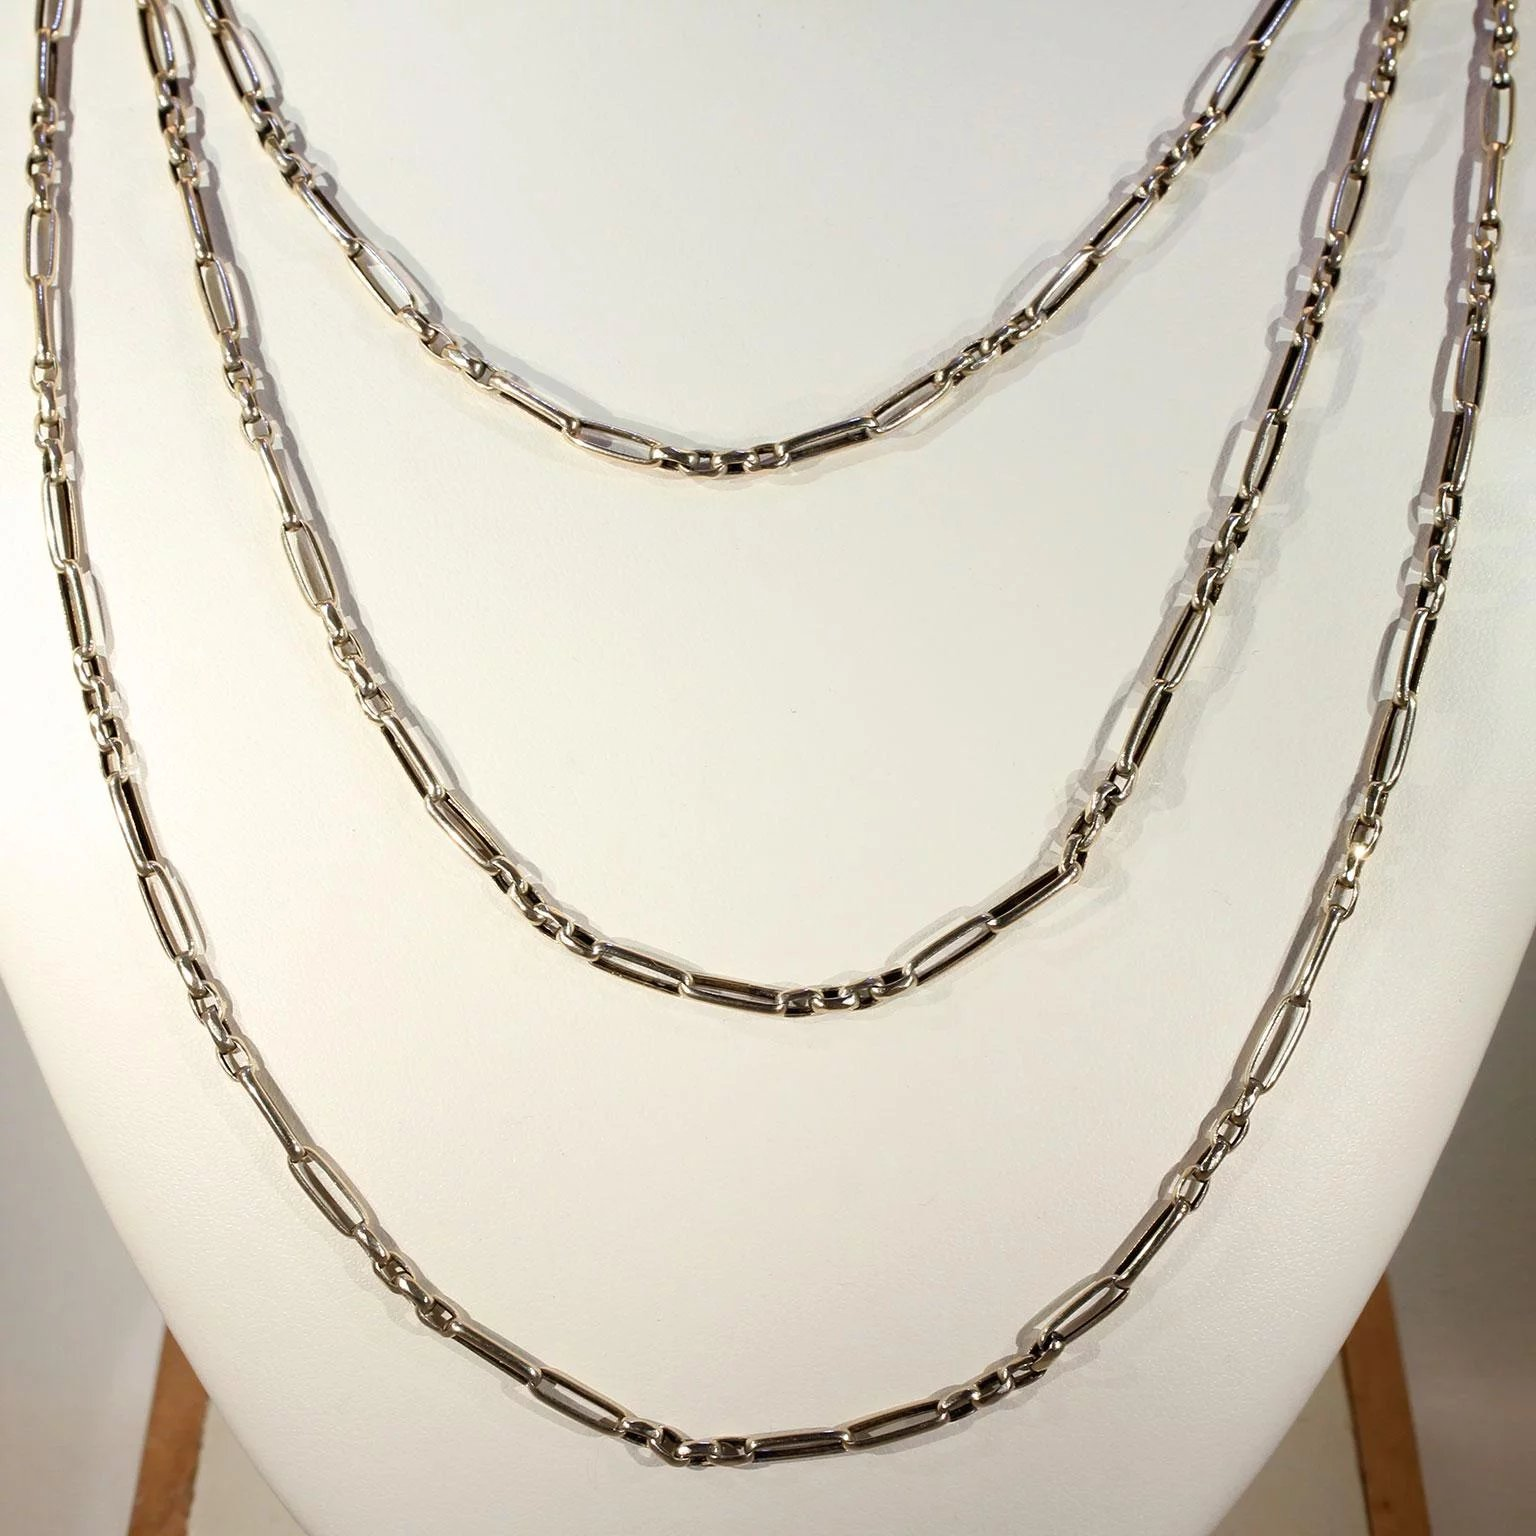 Antique Victorian English Long Guard Chain Necklace